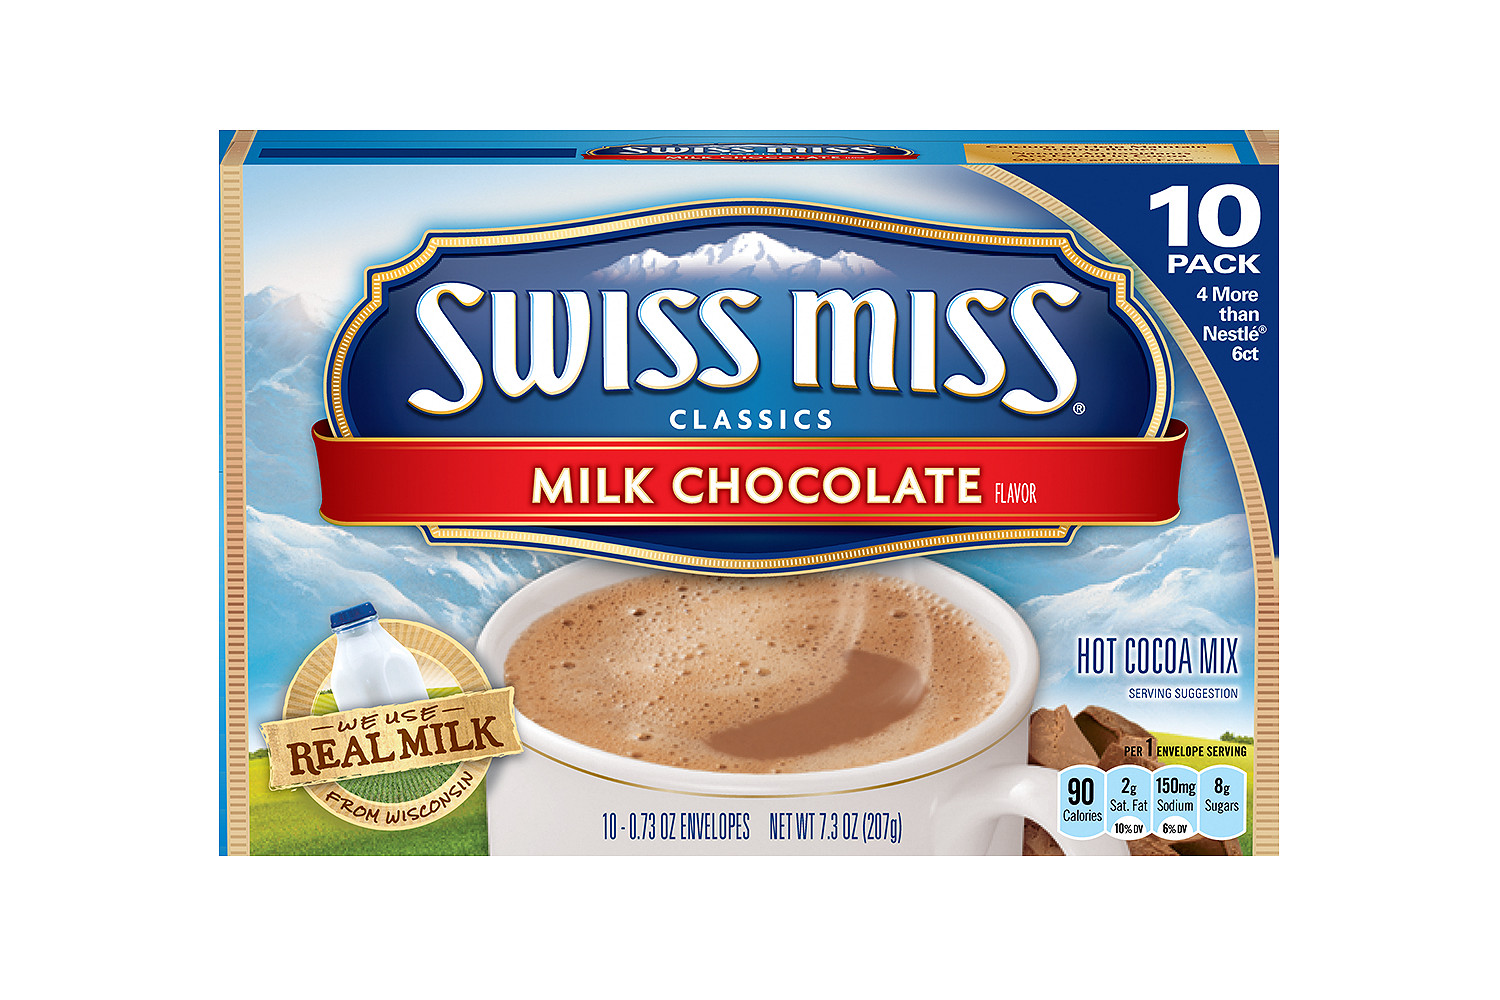 SWISS MISS Hot Cocoa Mix Milk Chocolate